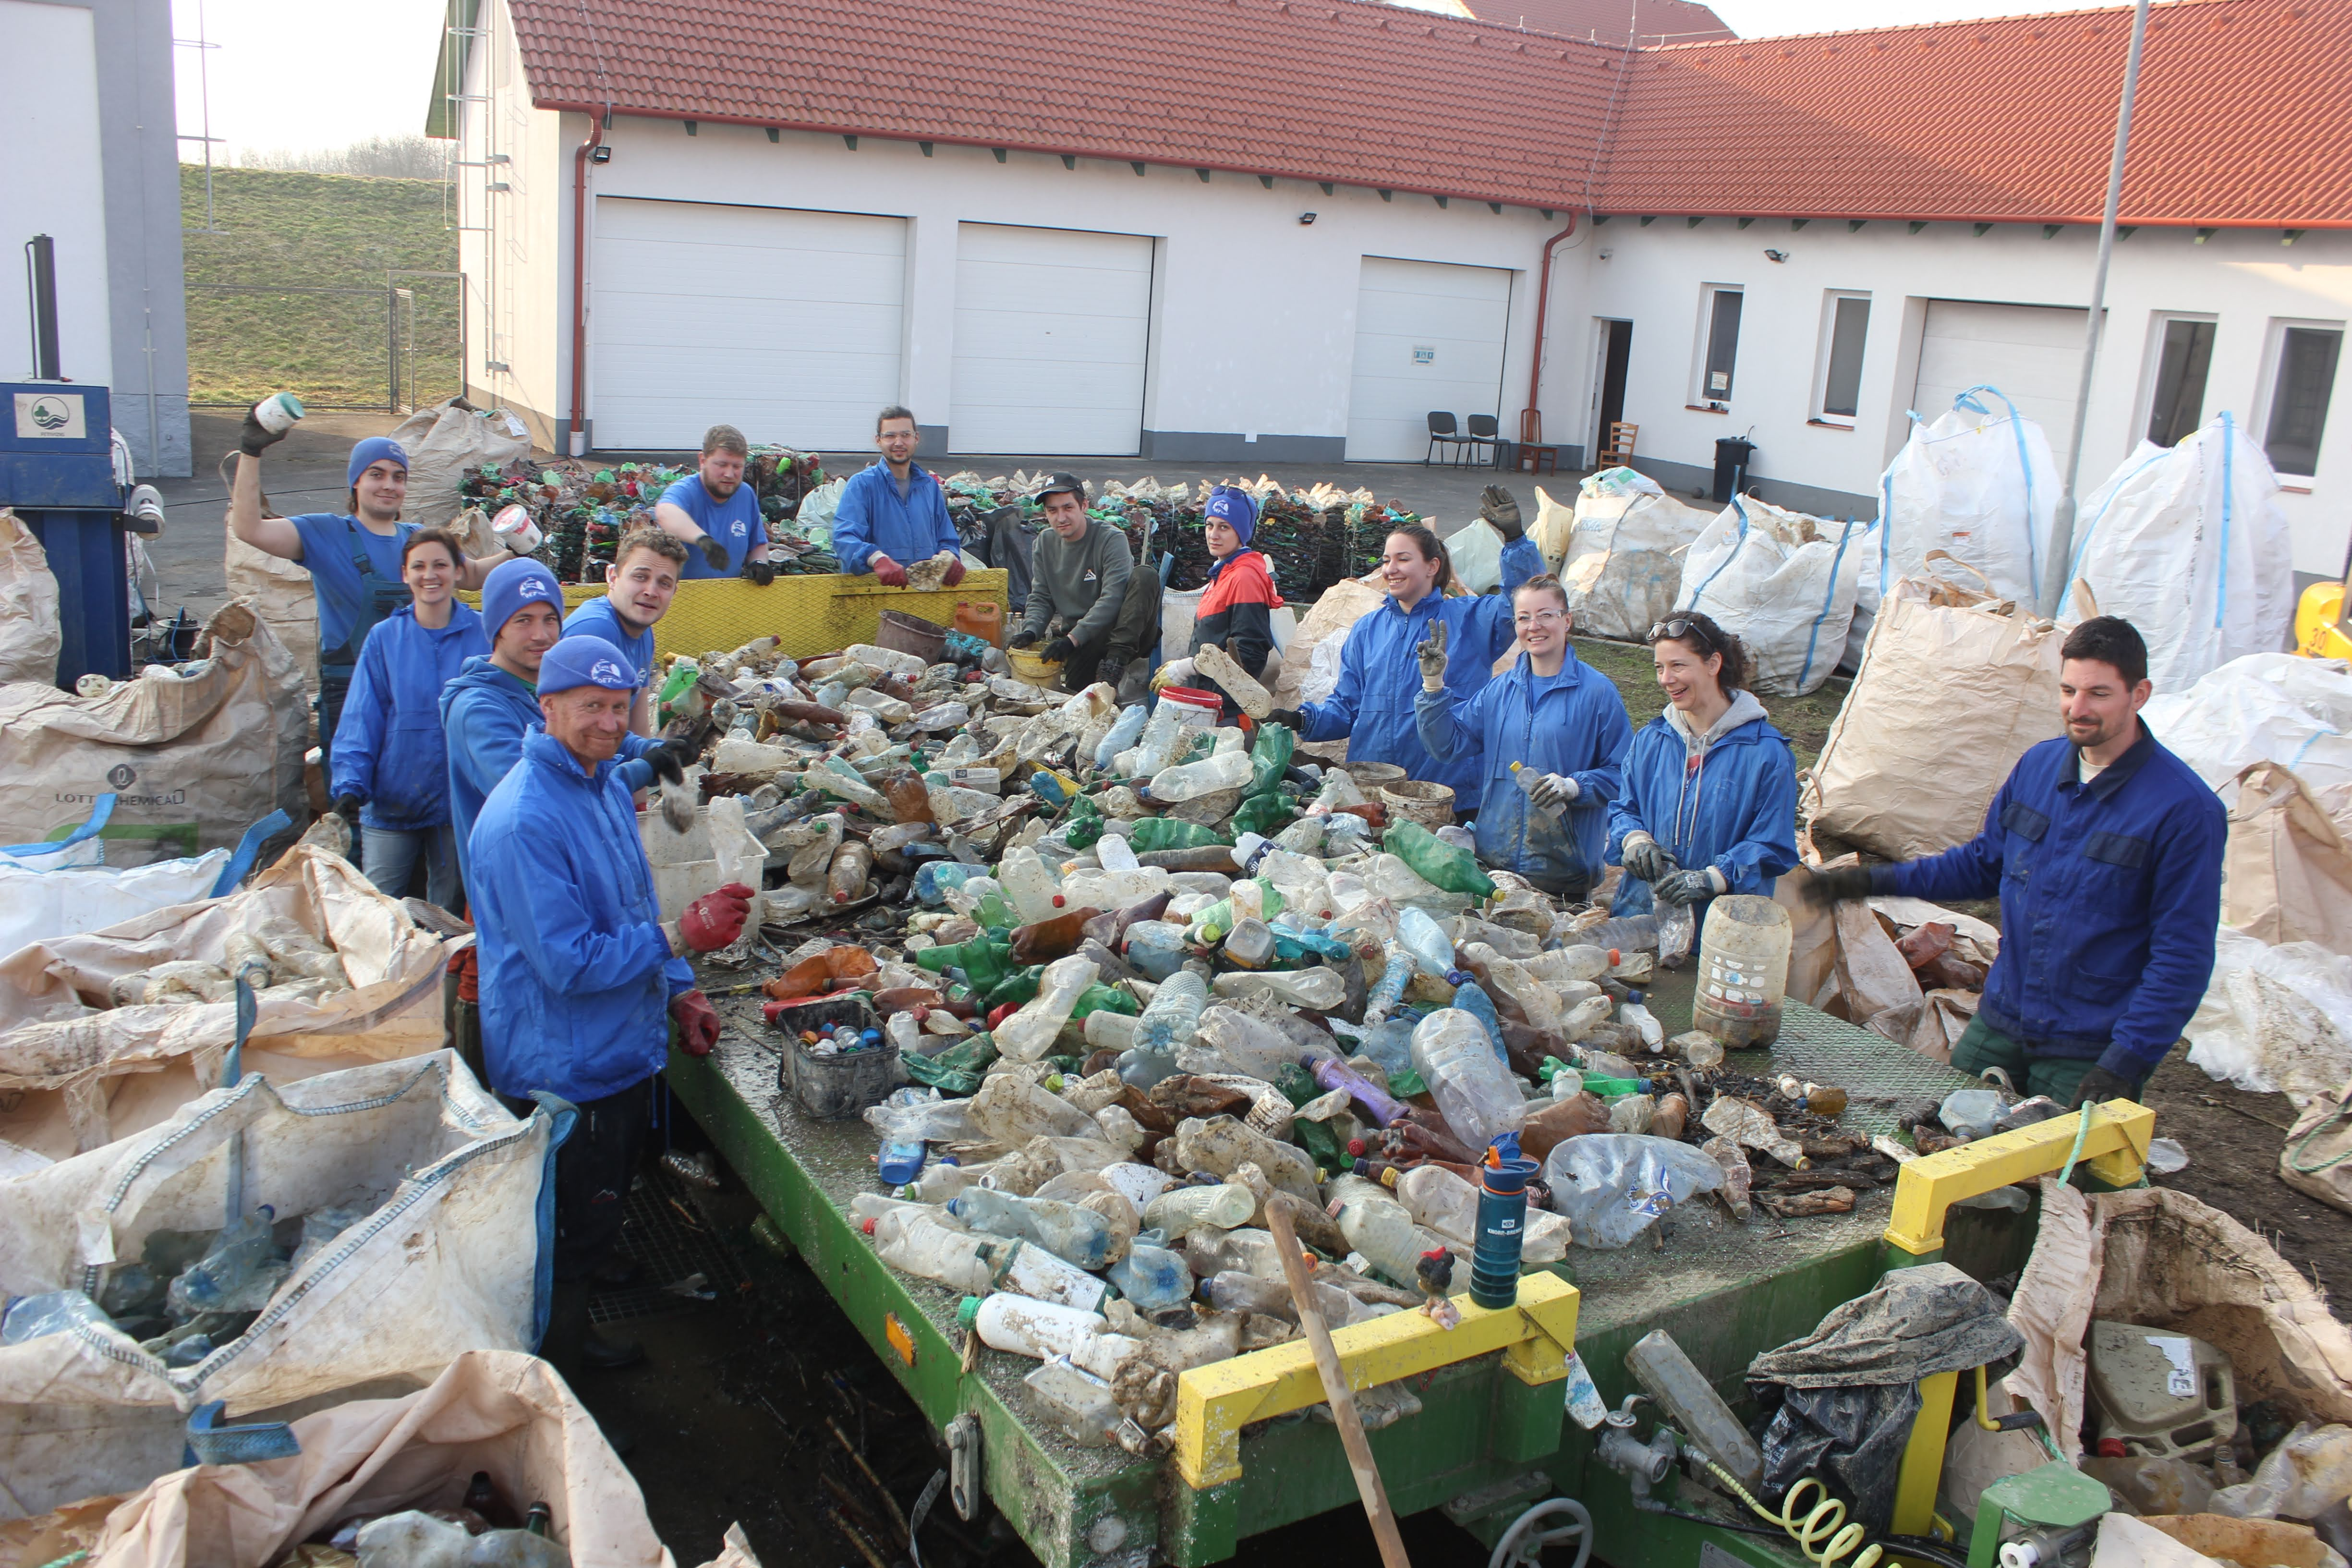 As a result of great teamwork, 7 tons of trash from the Tisza river will be recycled